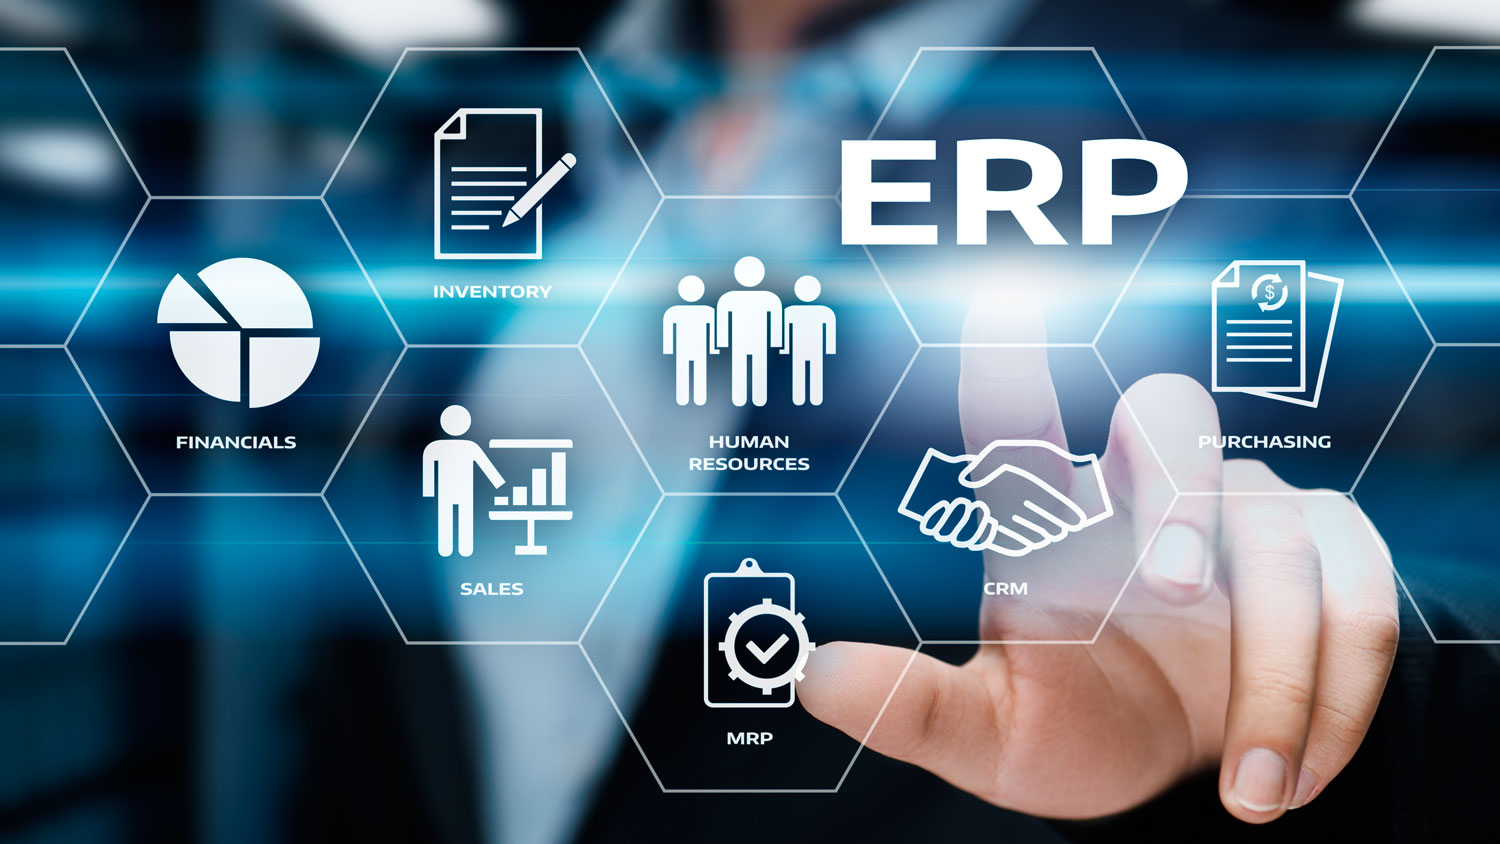 What is the purpose of using ERP software?